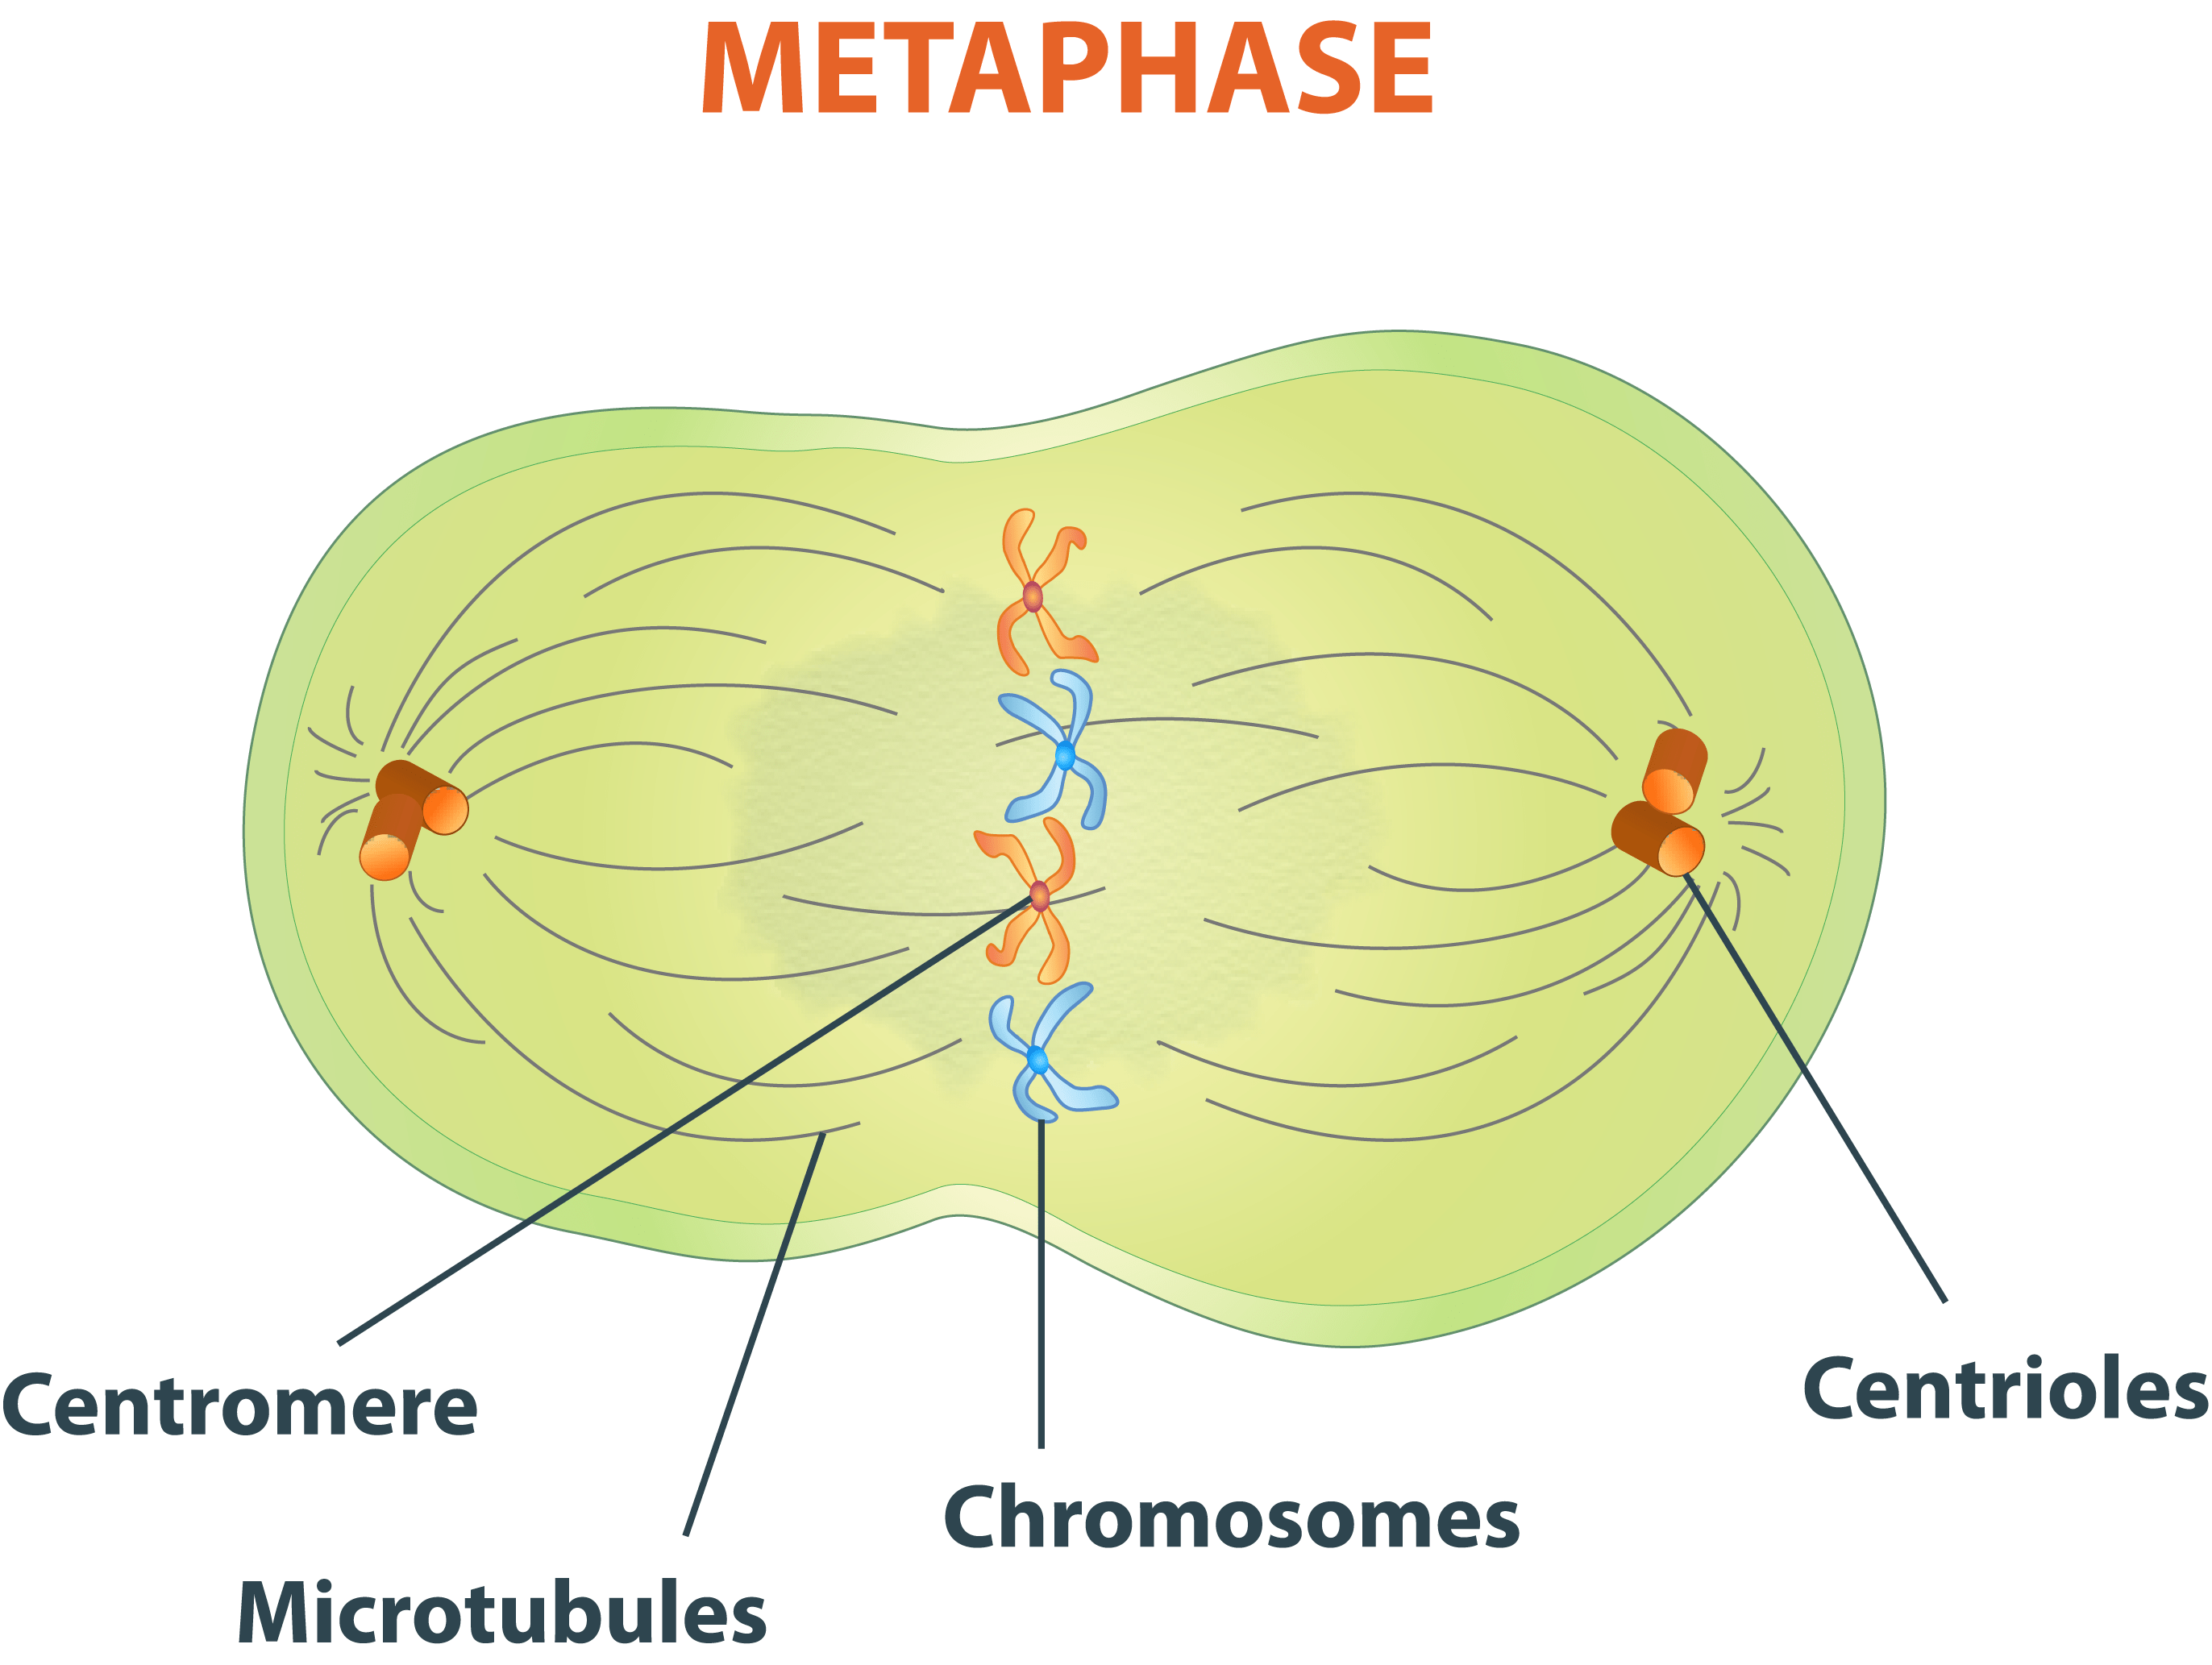 meiosis 1 diagram honeywell zone valves wiring interphase labeled related keywords